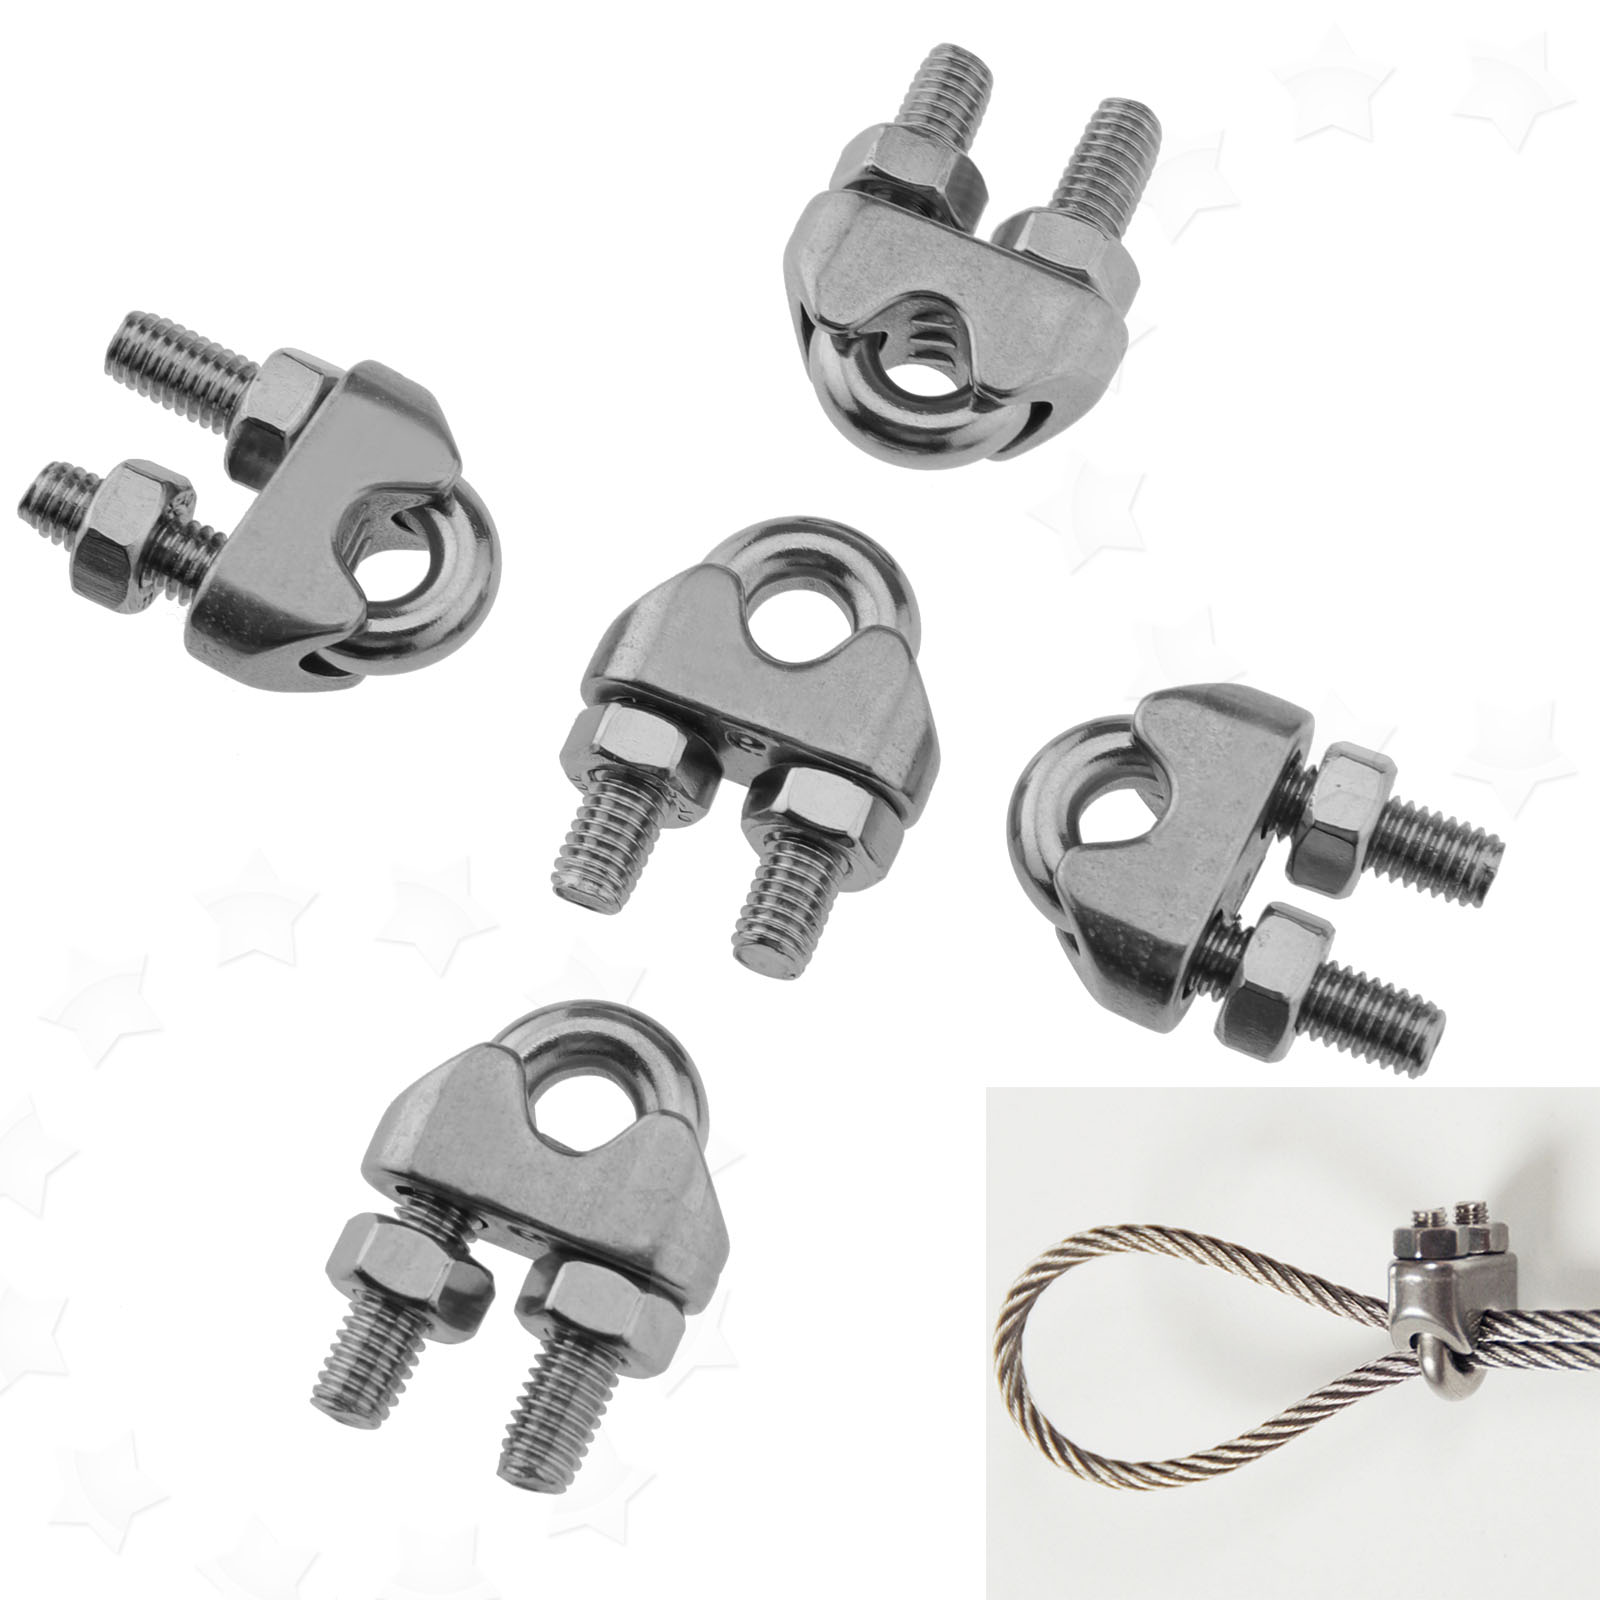 5x 6mm Wire Rope Grip Cable Clamp Saddle Clips U Bolt Fastener ...